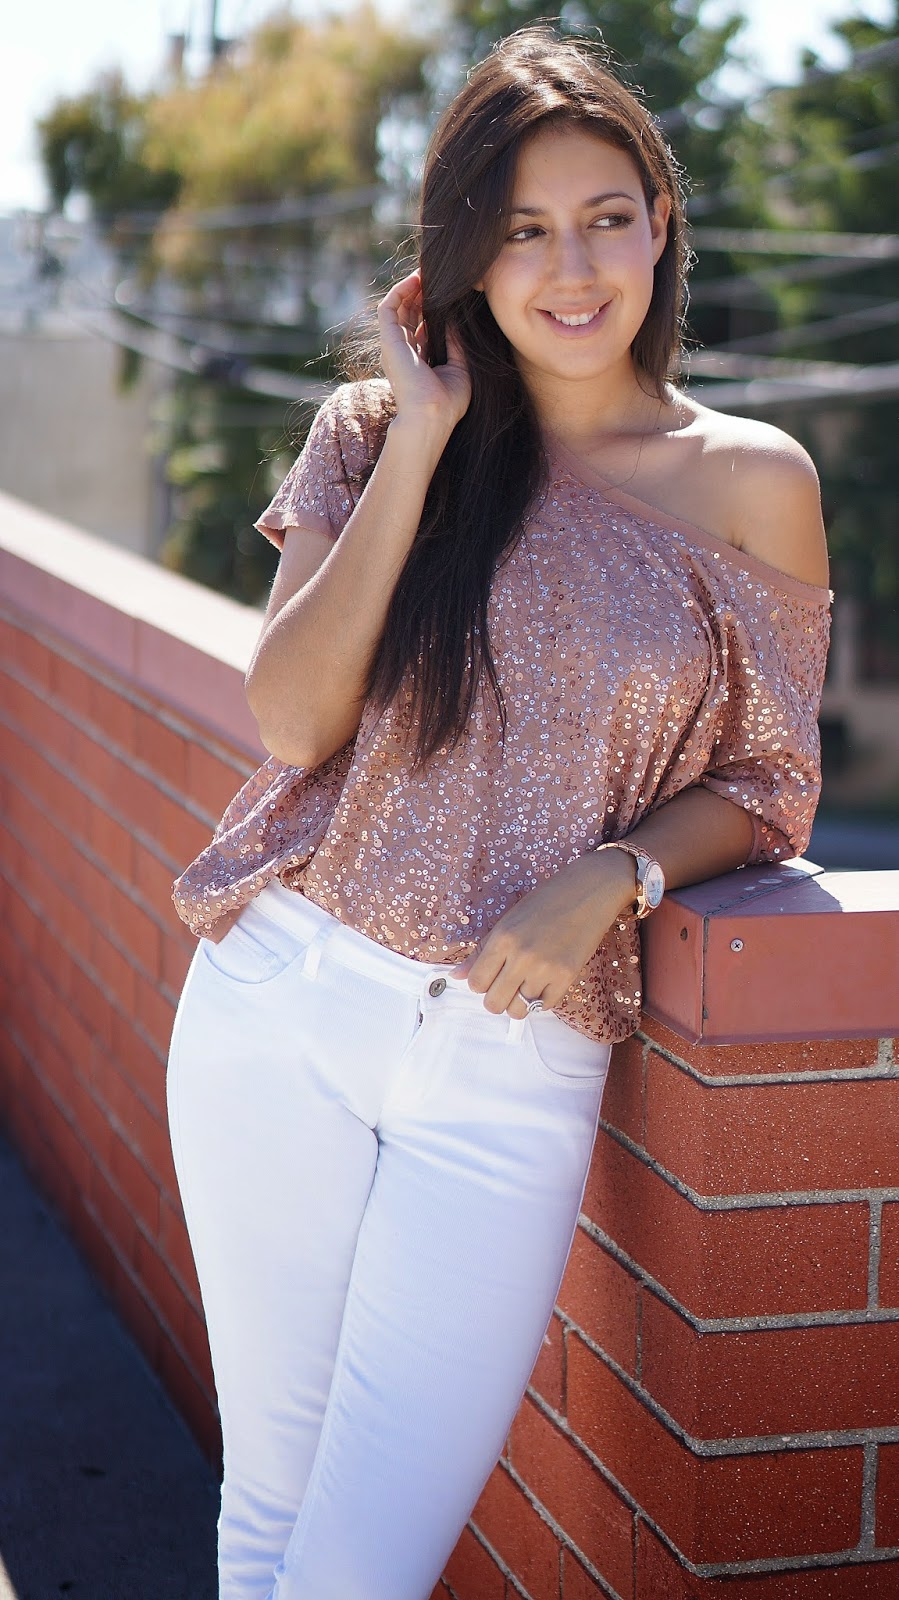 H&M, White Levis Jeans, Liz Claiborne Rose Gold Watch, Zara Pastel Colored Heels, Sequin off the shoulder top